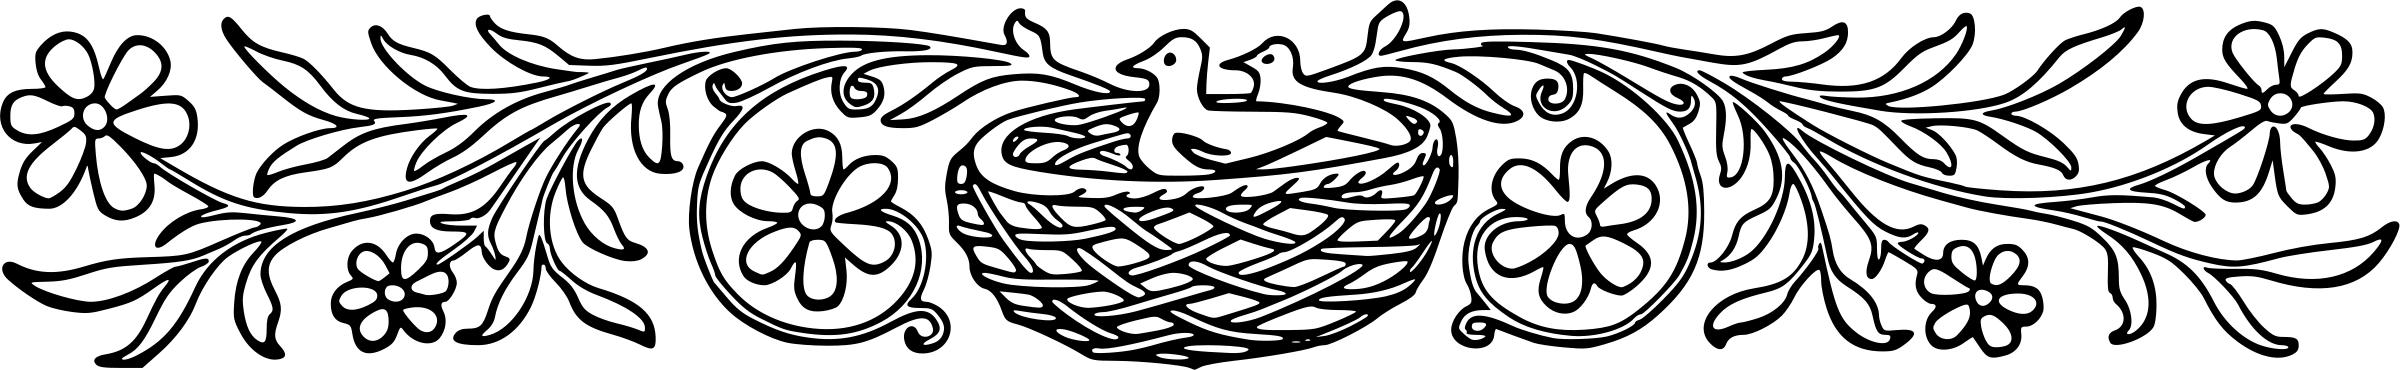 Free lider icons png. Bird clipart divider